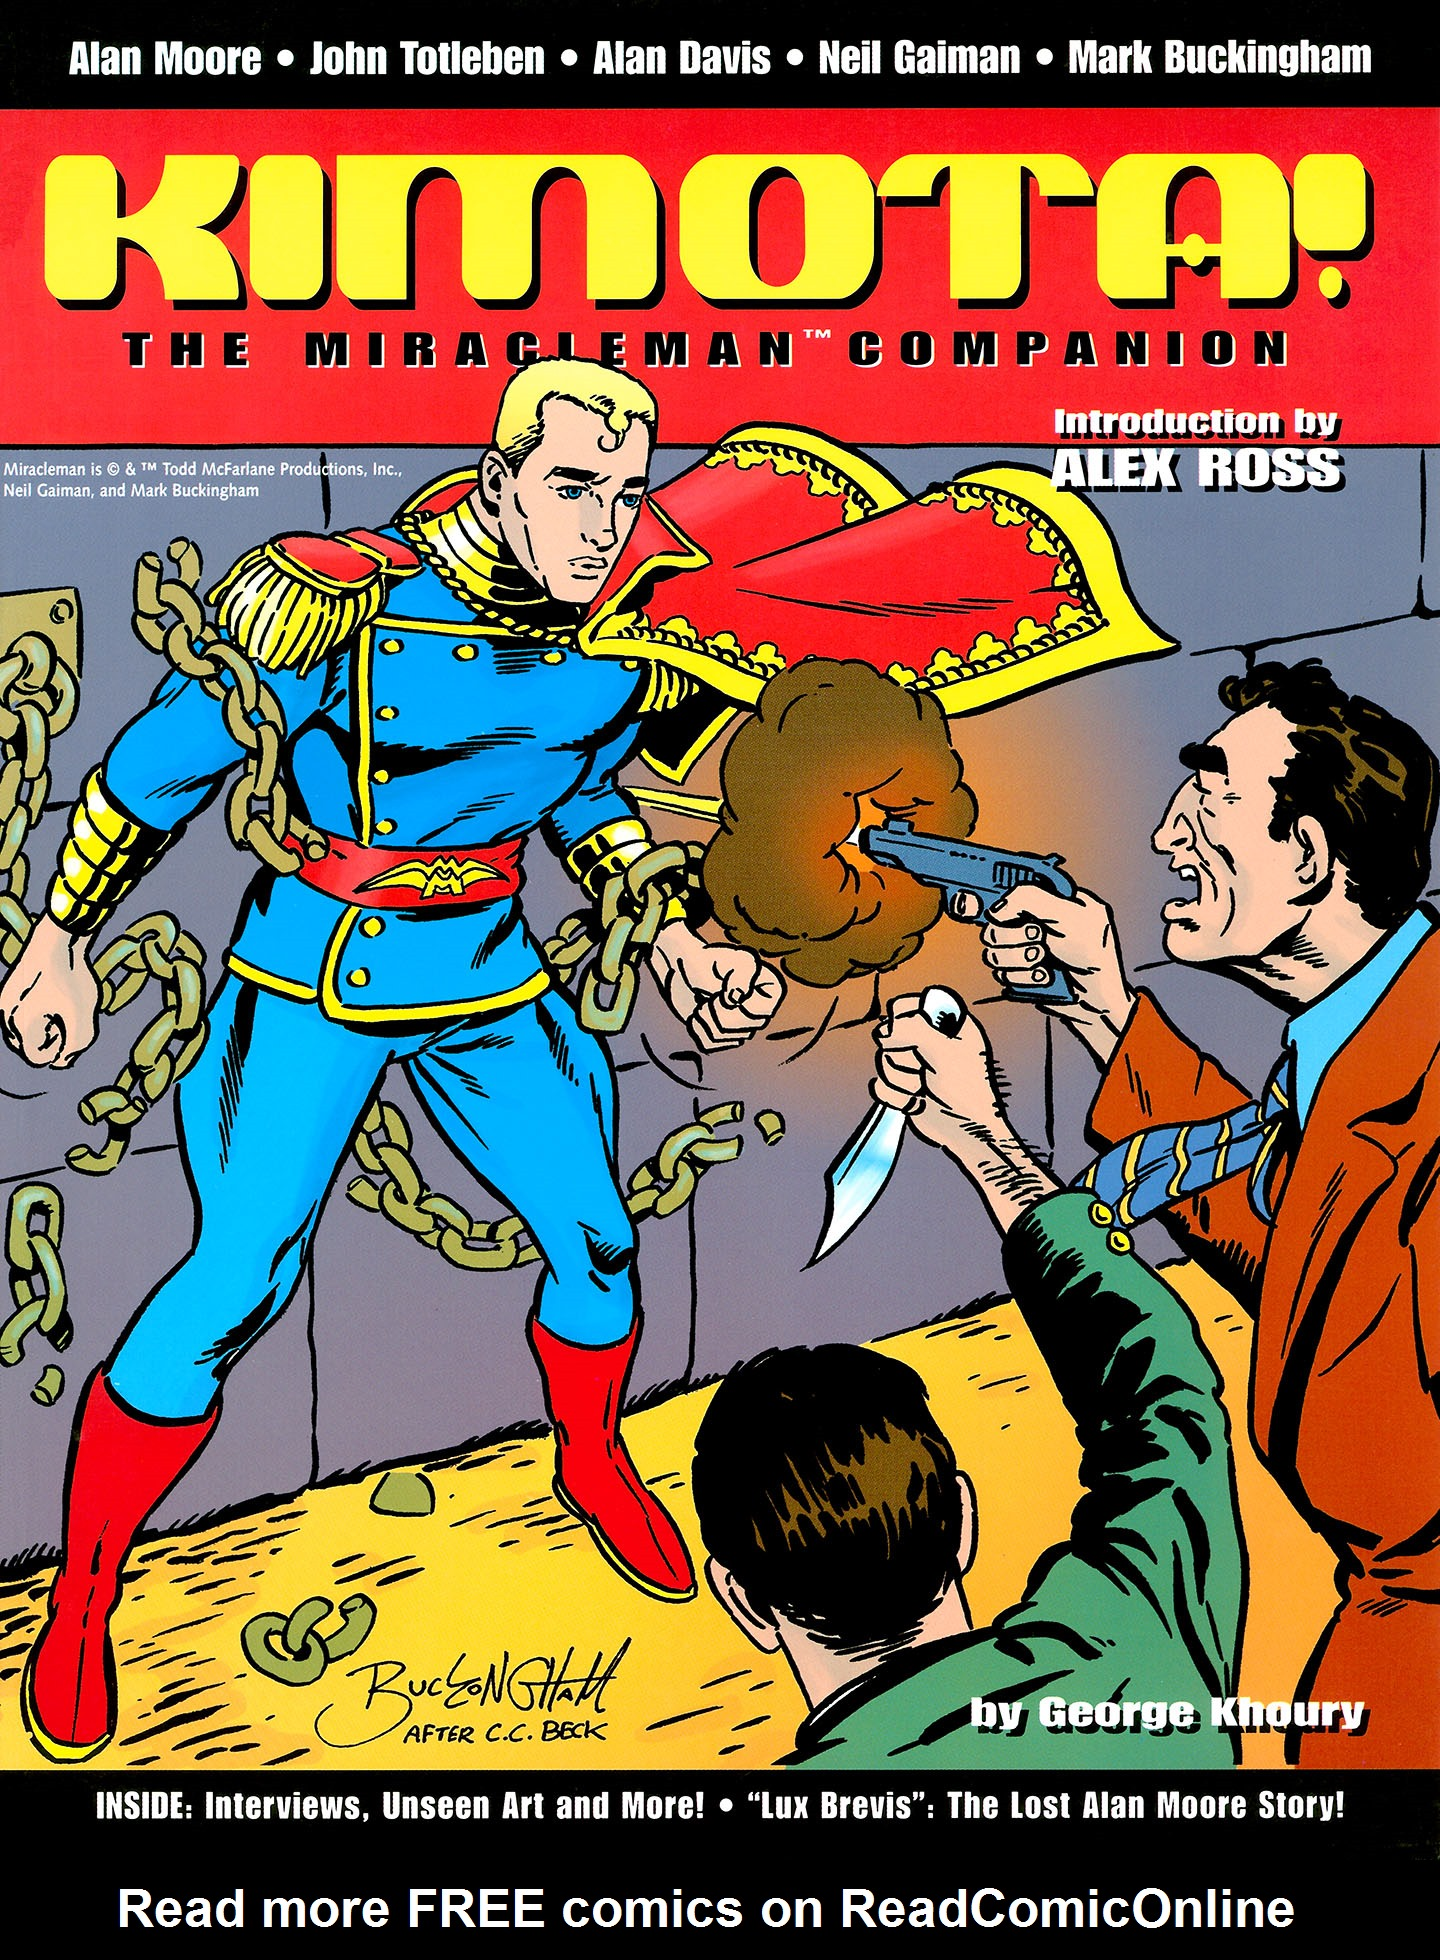 Read online Kimota!: The Miracleman Companion comic -  Issue # Full - 1